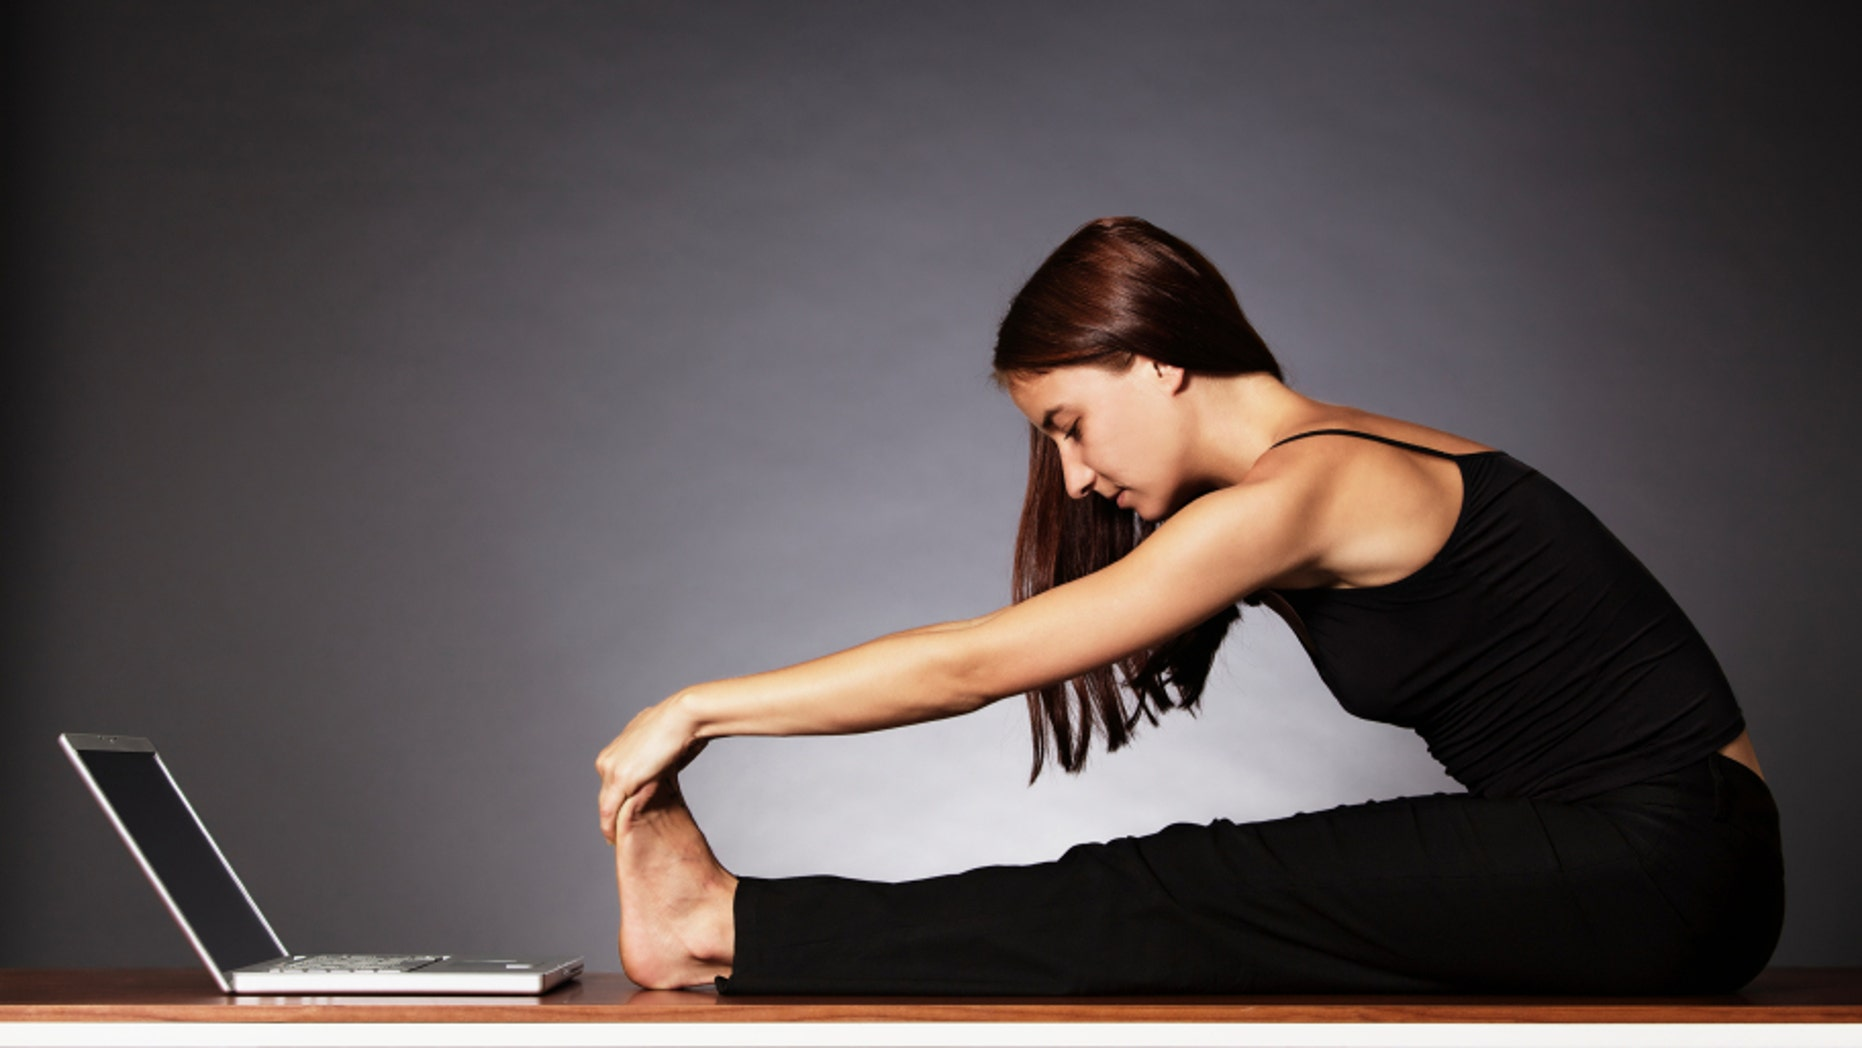 Balance at work: Young pretty woman in black sitting in front of laptop and stretching her legs .